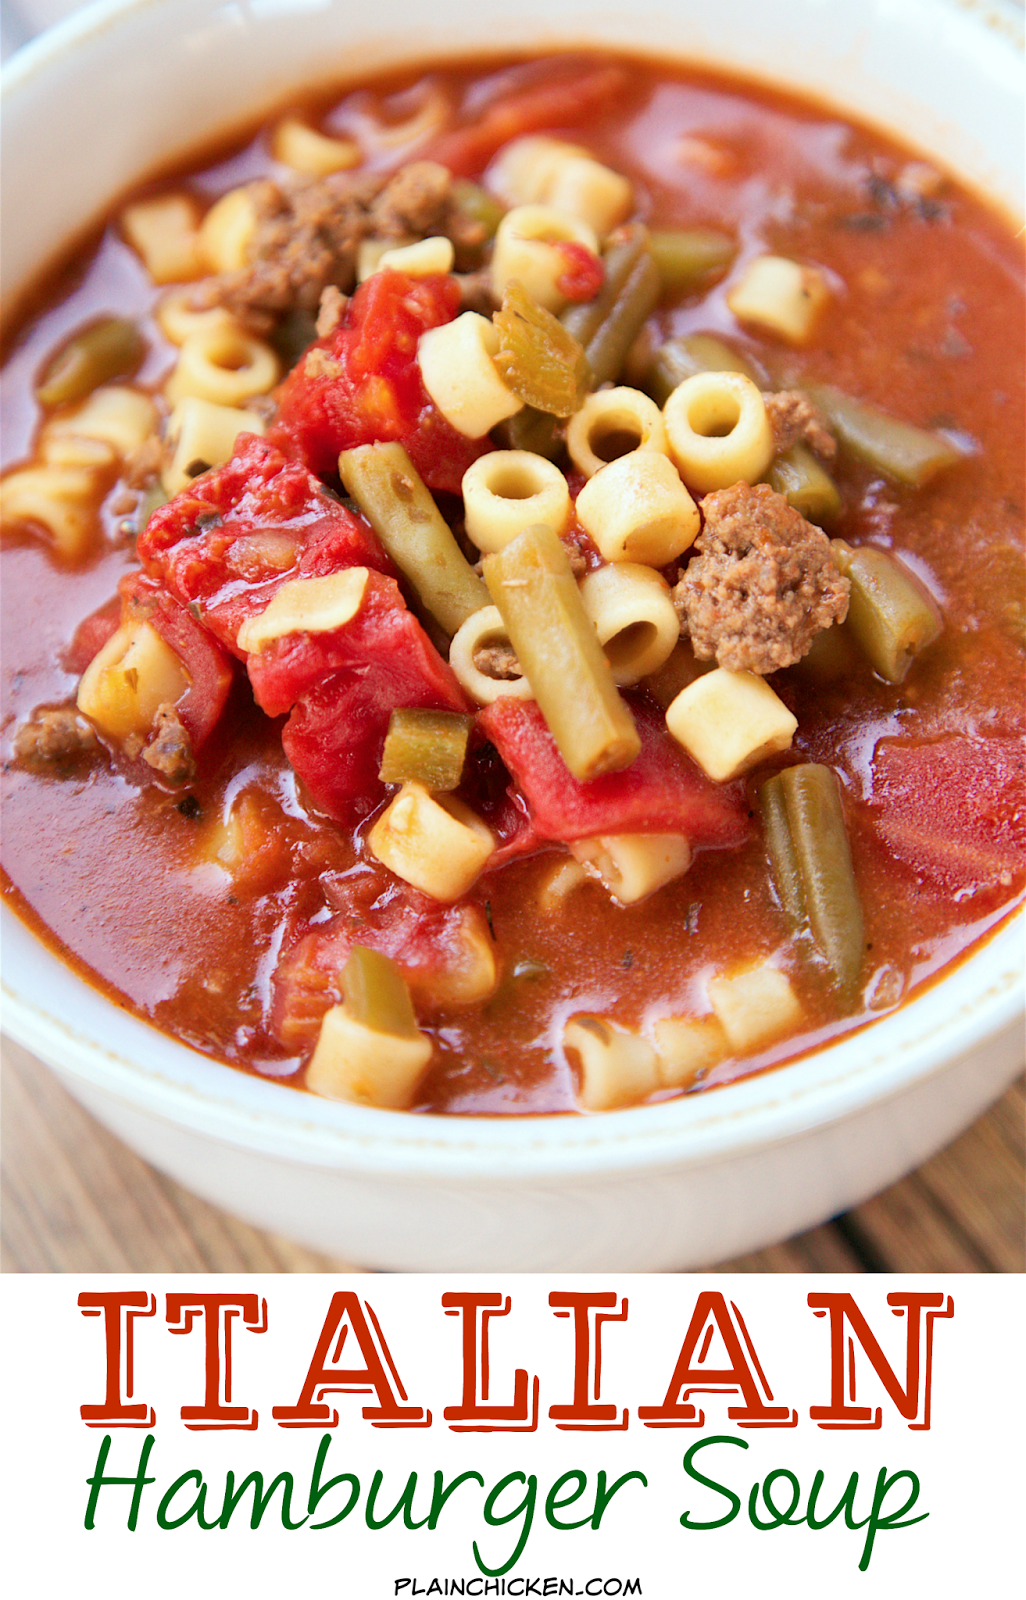 Italian Hamburger Soup Ground Beef Peppers Stewed Tomatoes Green Beans Tomato Sauce Oregano Basil And Pas Hamburger Soup Stewed Tomatoes Delicious Soup